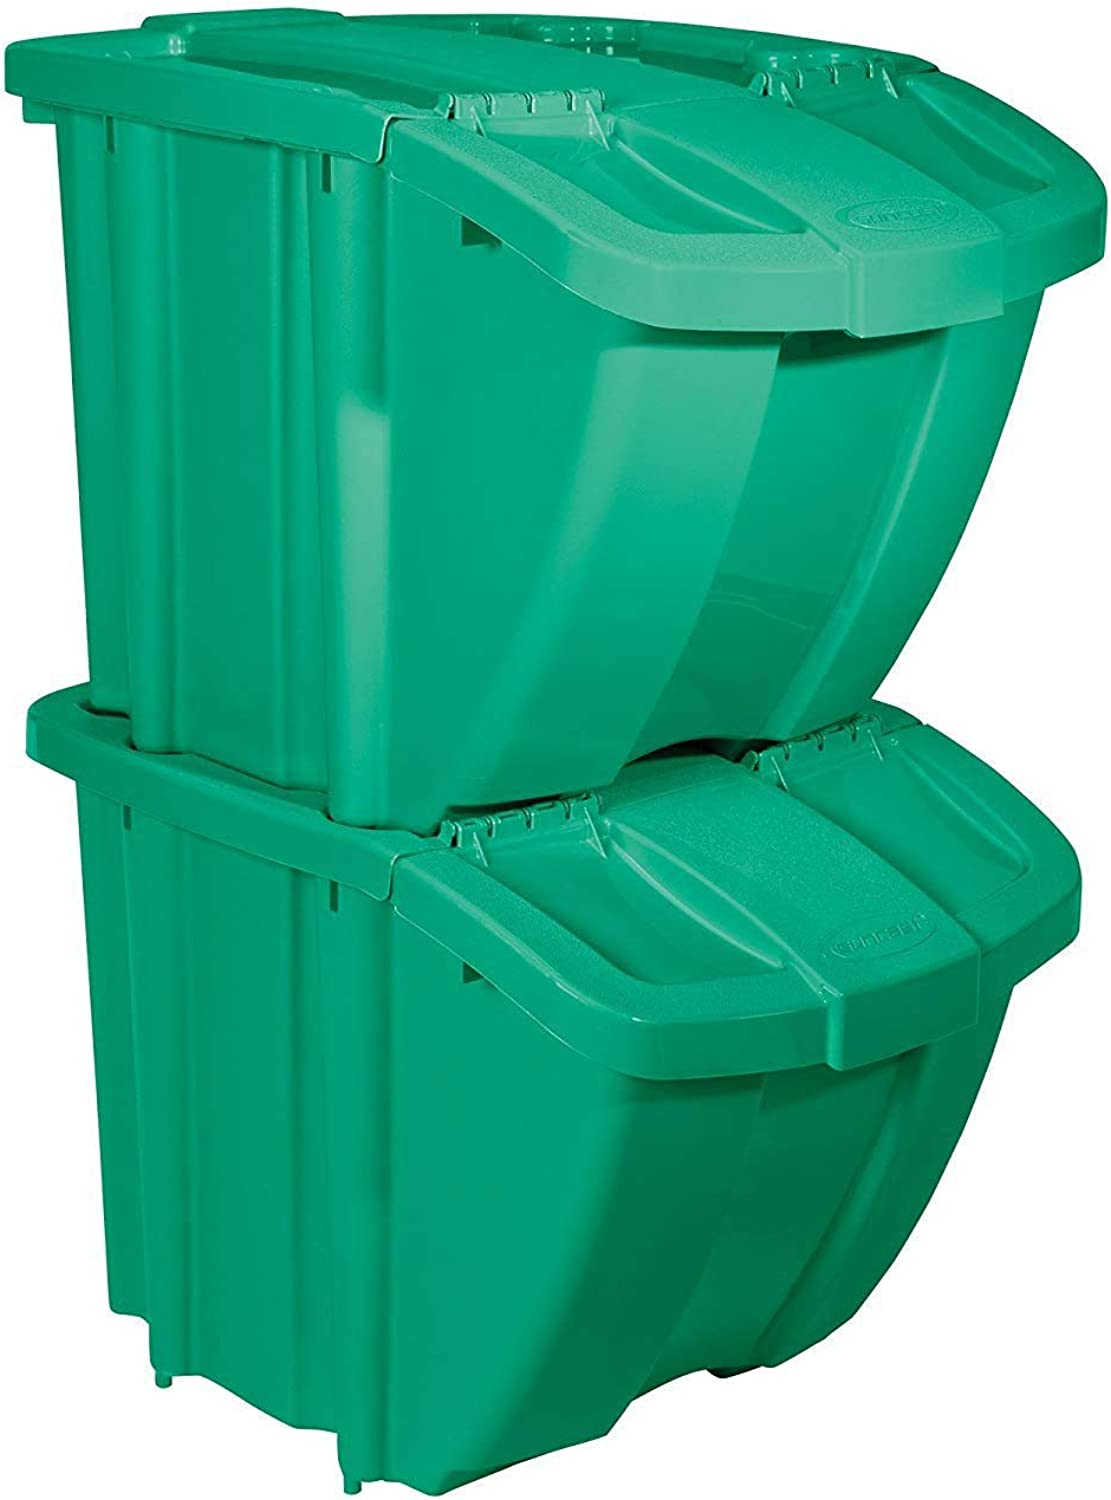 Suncast BH18blueE2 Stackable Recycling Bin Containers with Lids, bluee (4 Pack)